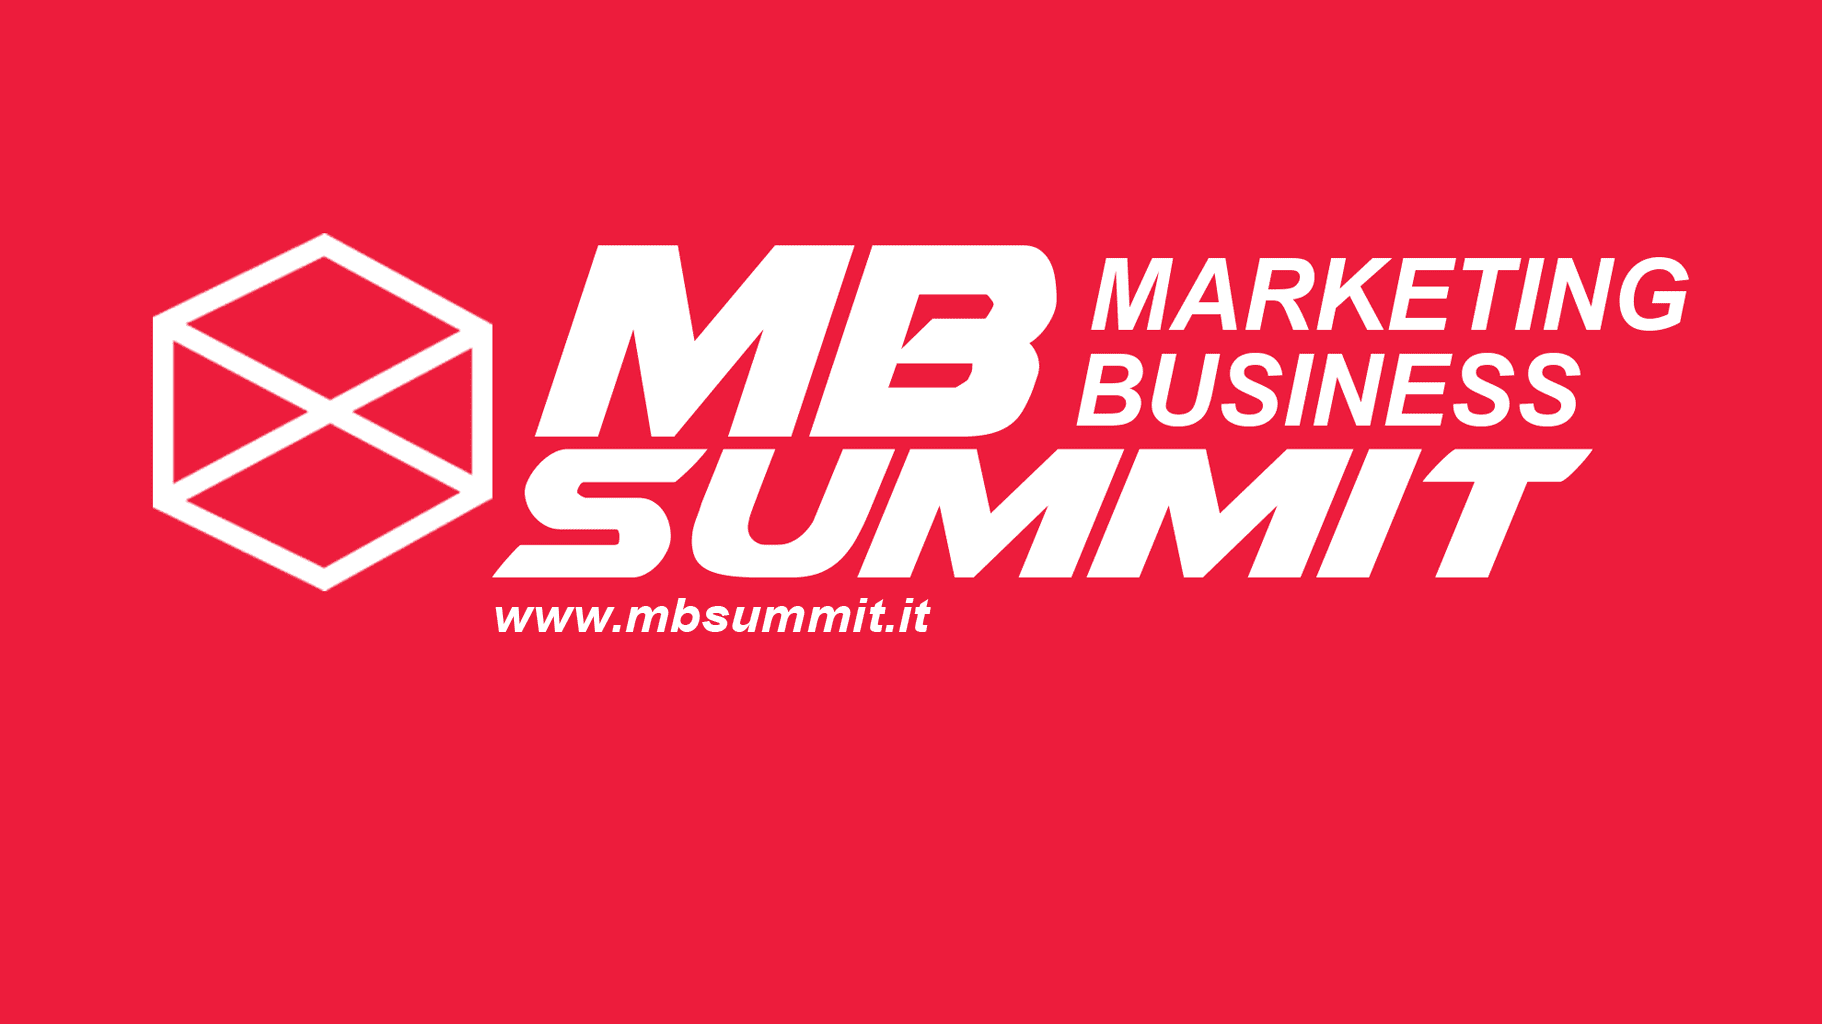 Marketing Business Summit 2019: a Milano la quarta edizione.